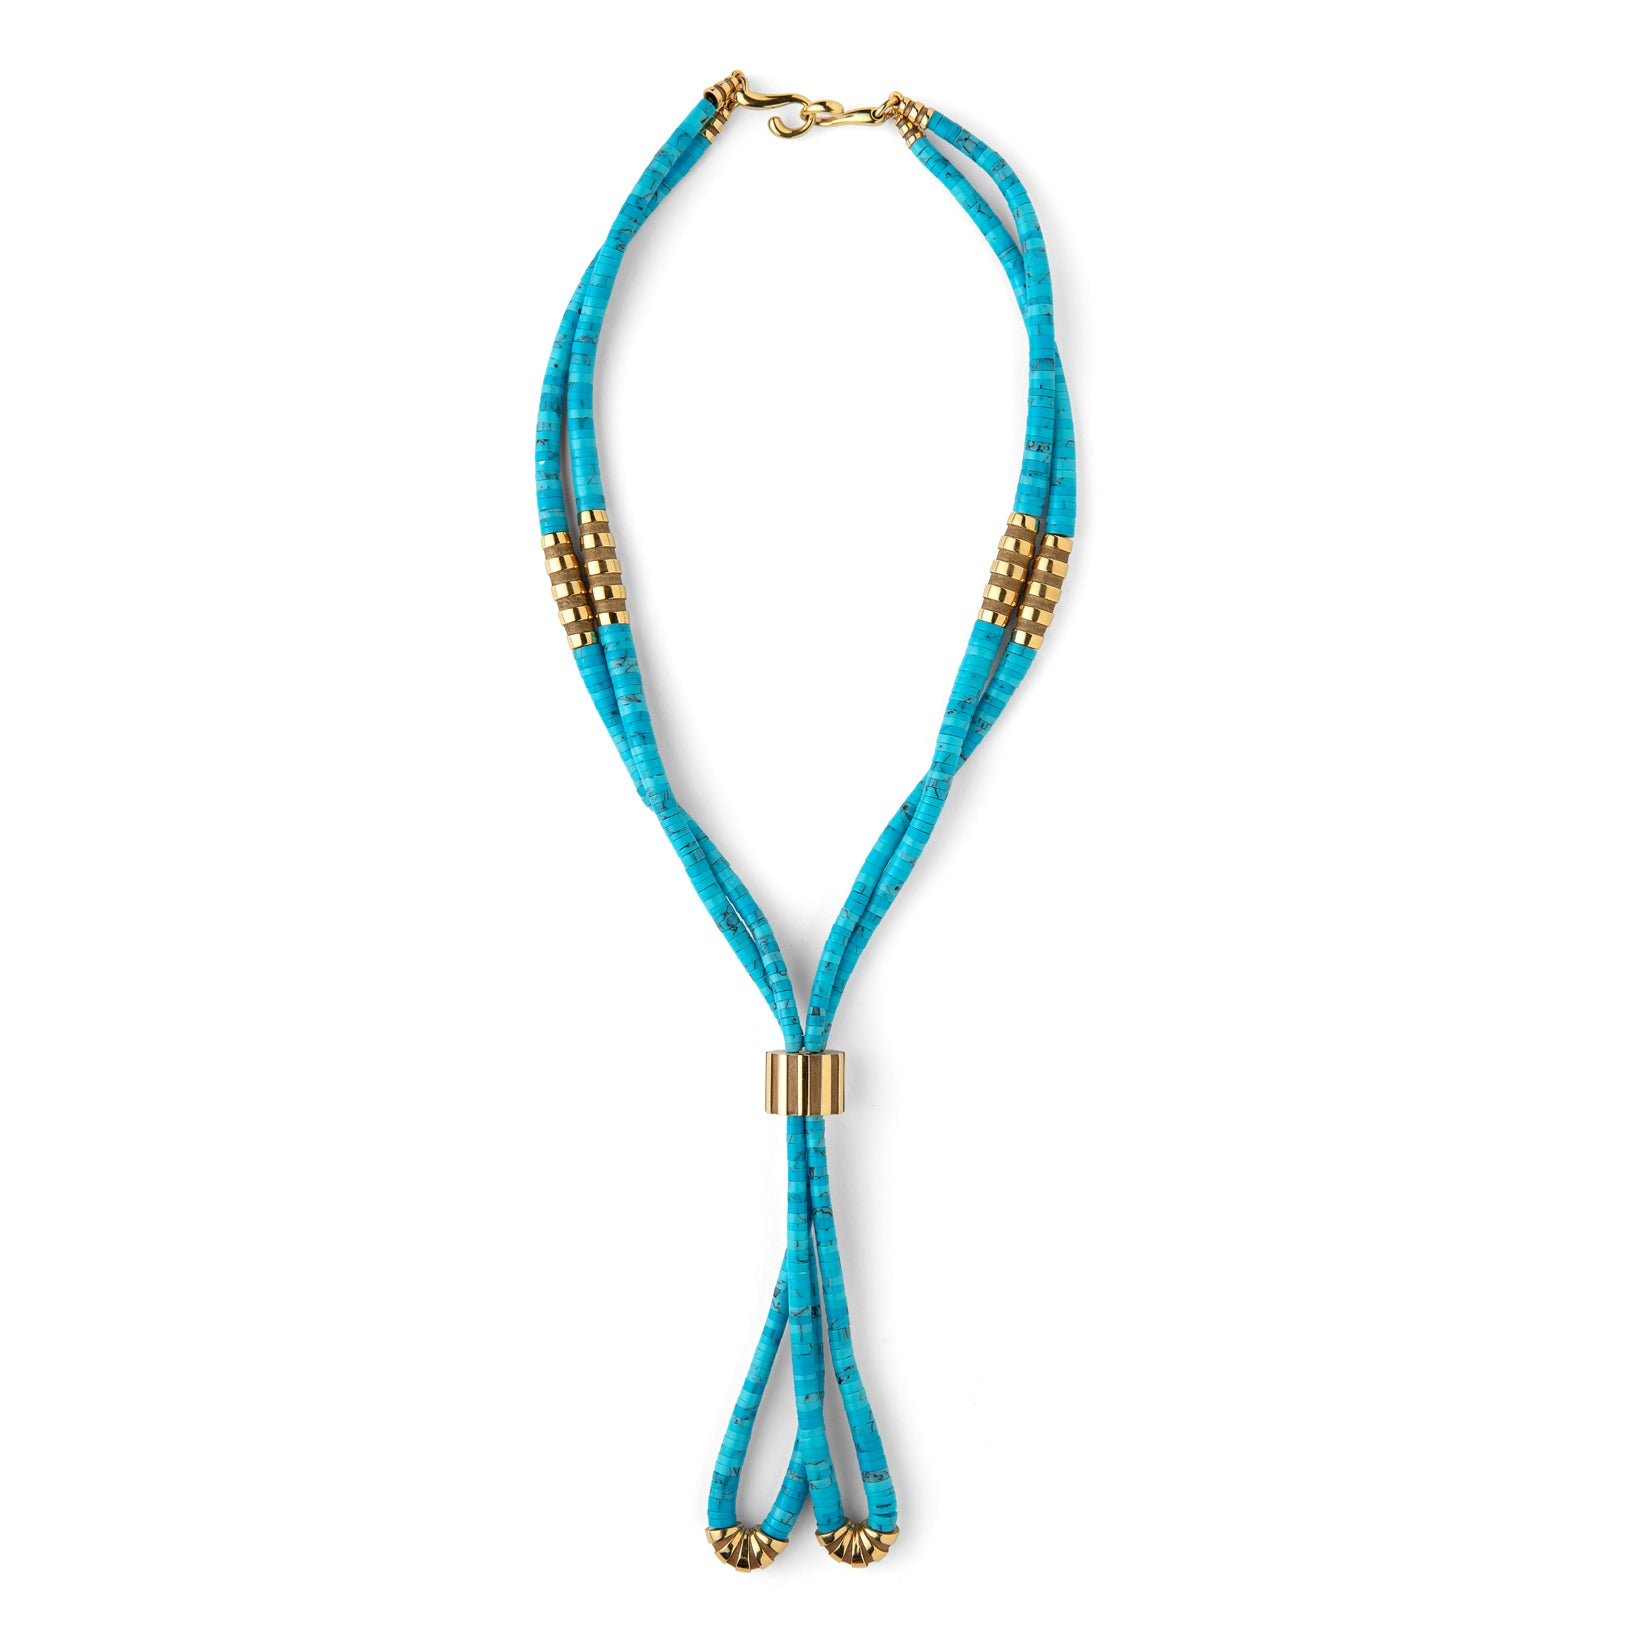 Mauboussin 'Nadja' Turquoise & Gold Necklace